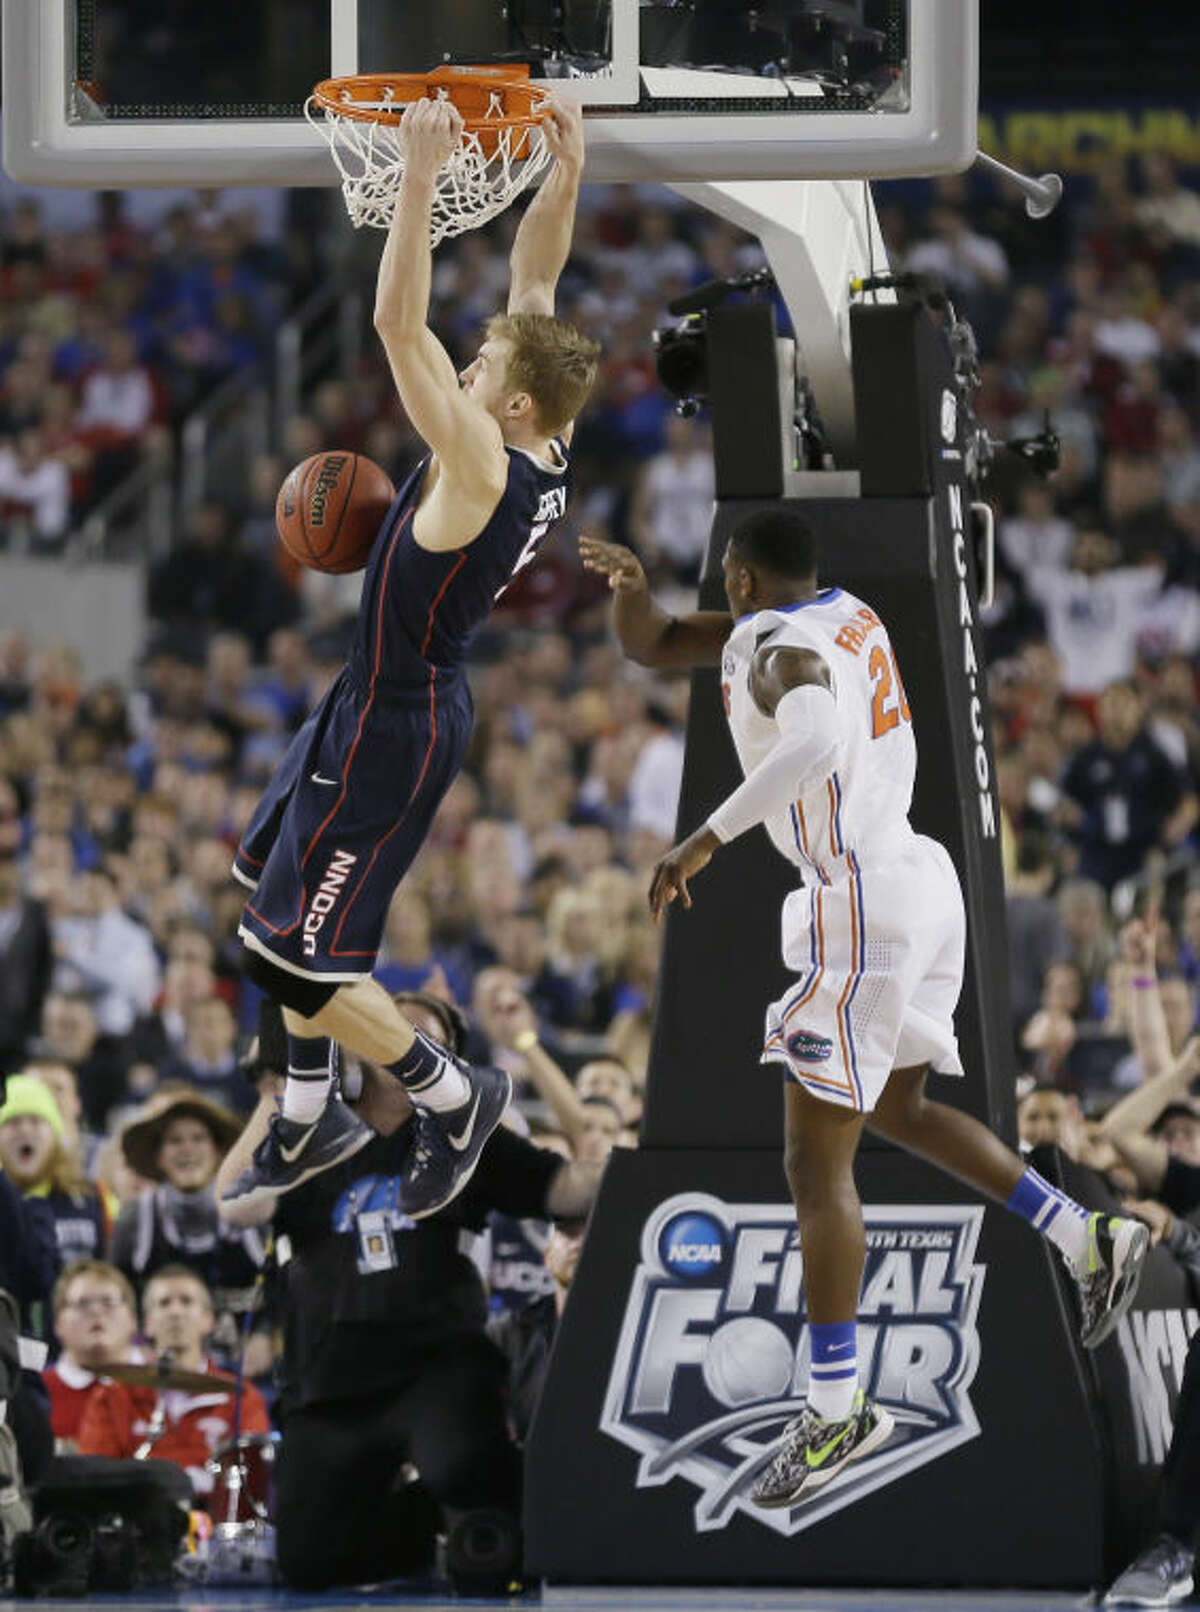 Connecticut forward Niels Giffey, left, dunks the ball in front of Florida guard Michael Frazier II during the second half of an NCAA Final Four tournament college basketball semifinal game Saturday, April 5, 2014, in Arlington, Texas. Connecticut won 63-53. (AP Photo/Charlie Neibergall)